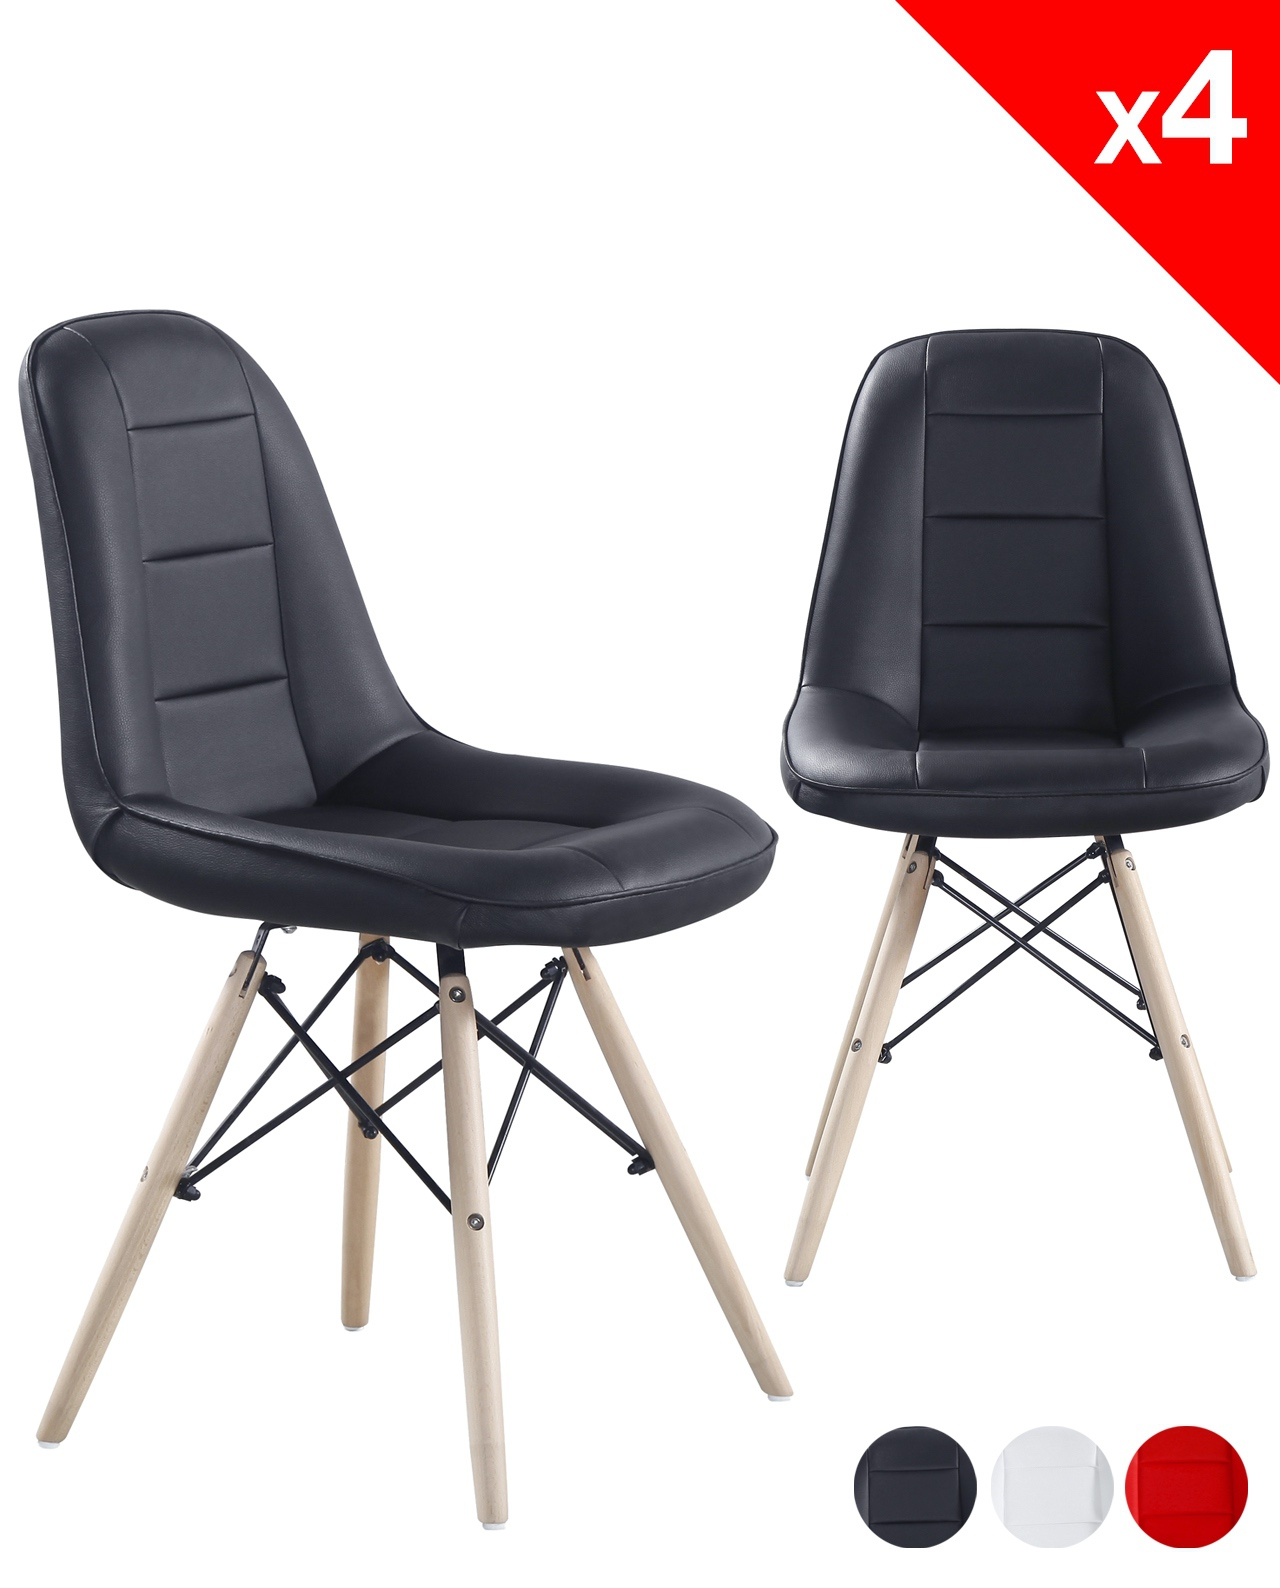 kong chaise scandinave matelass e lot de 4. Black Bedroom Furniture Sets. Home Design Ideas